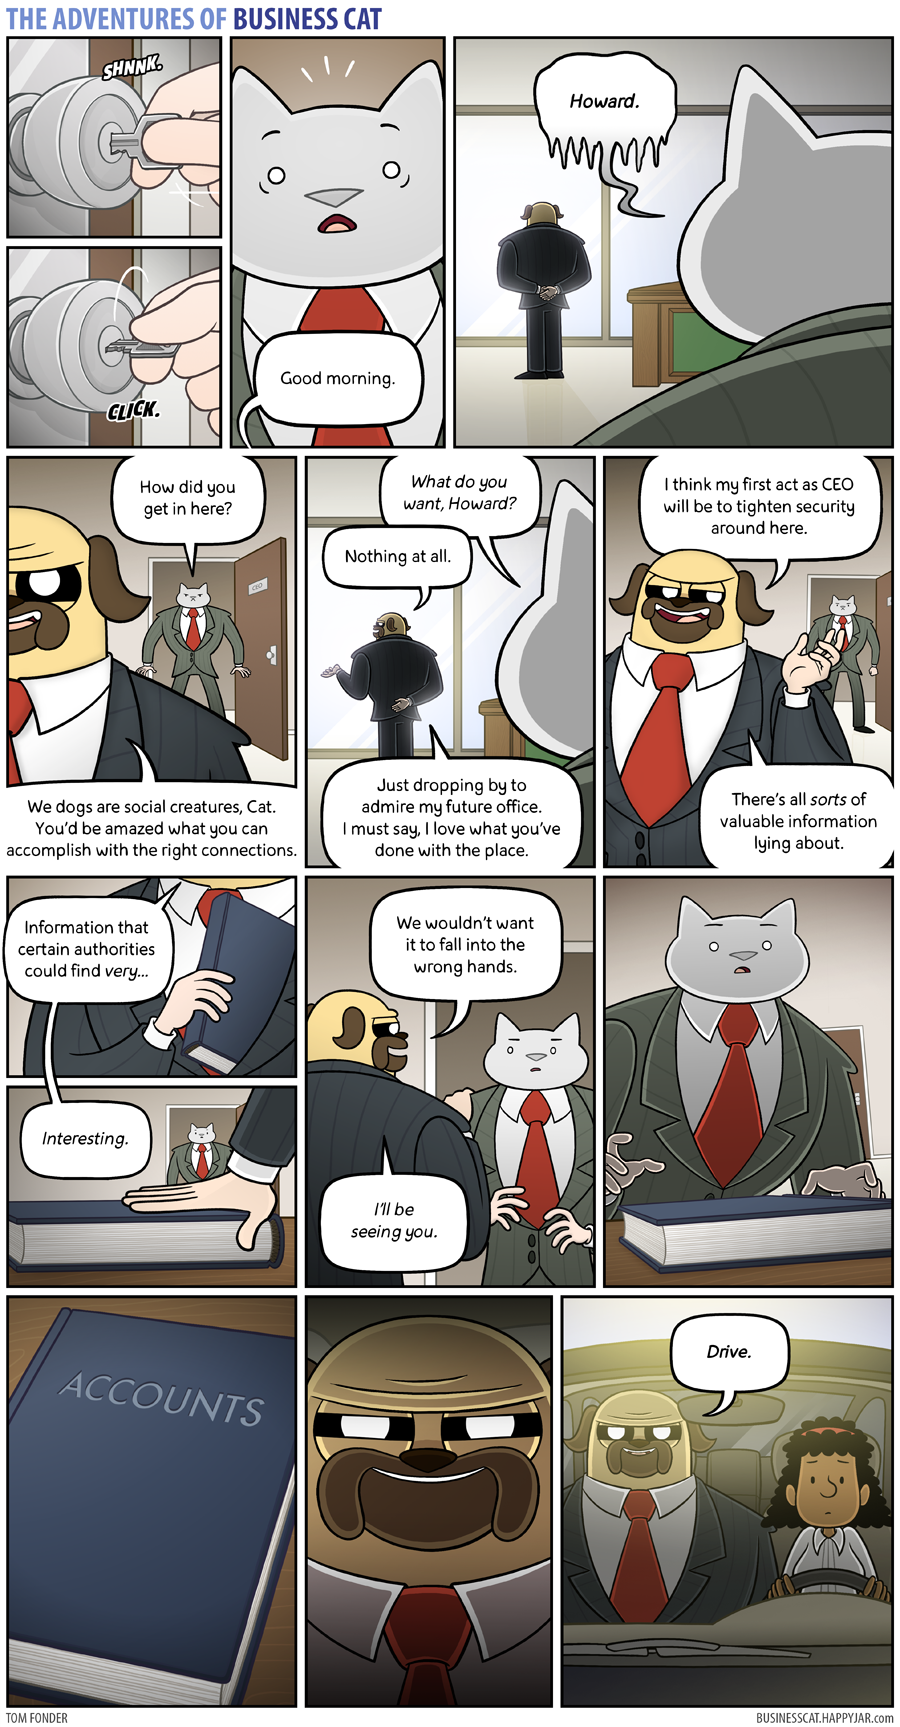 The Adventures of Business Cat - Cloak and Dagger